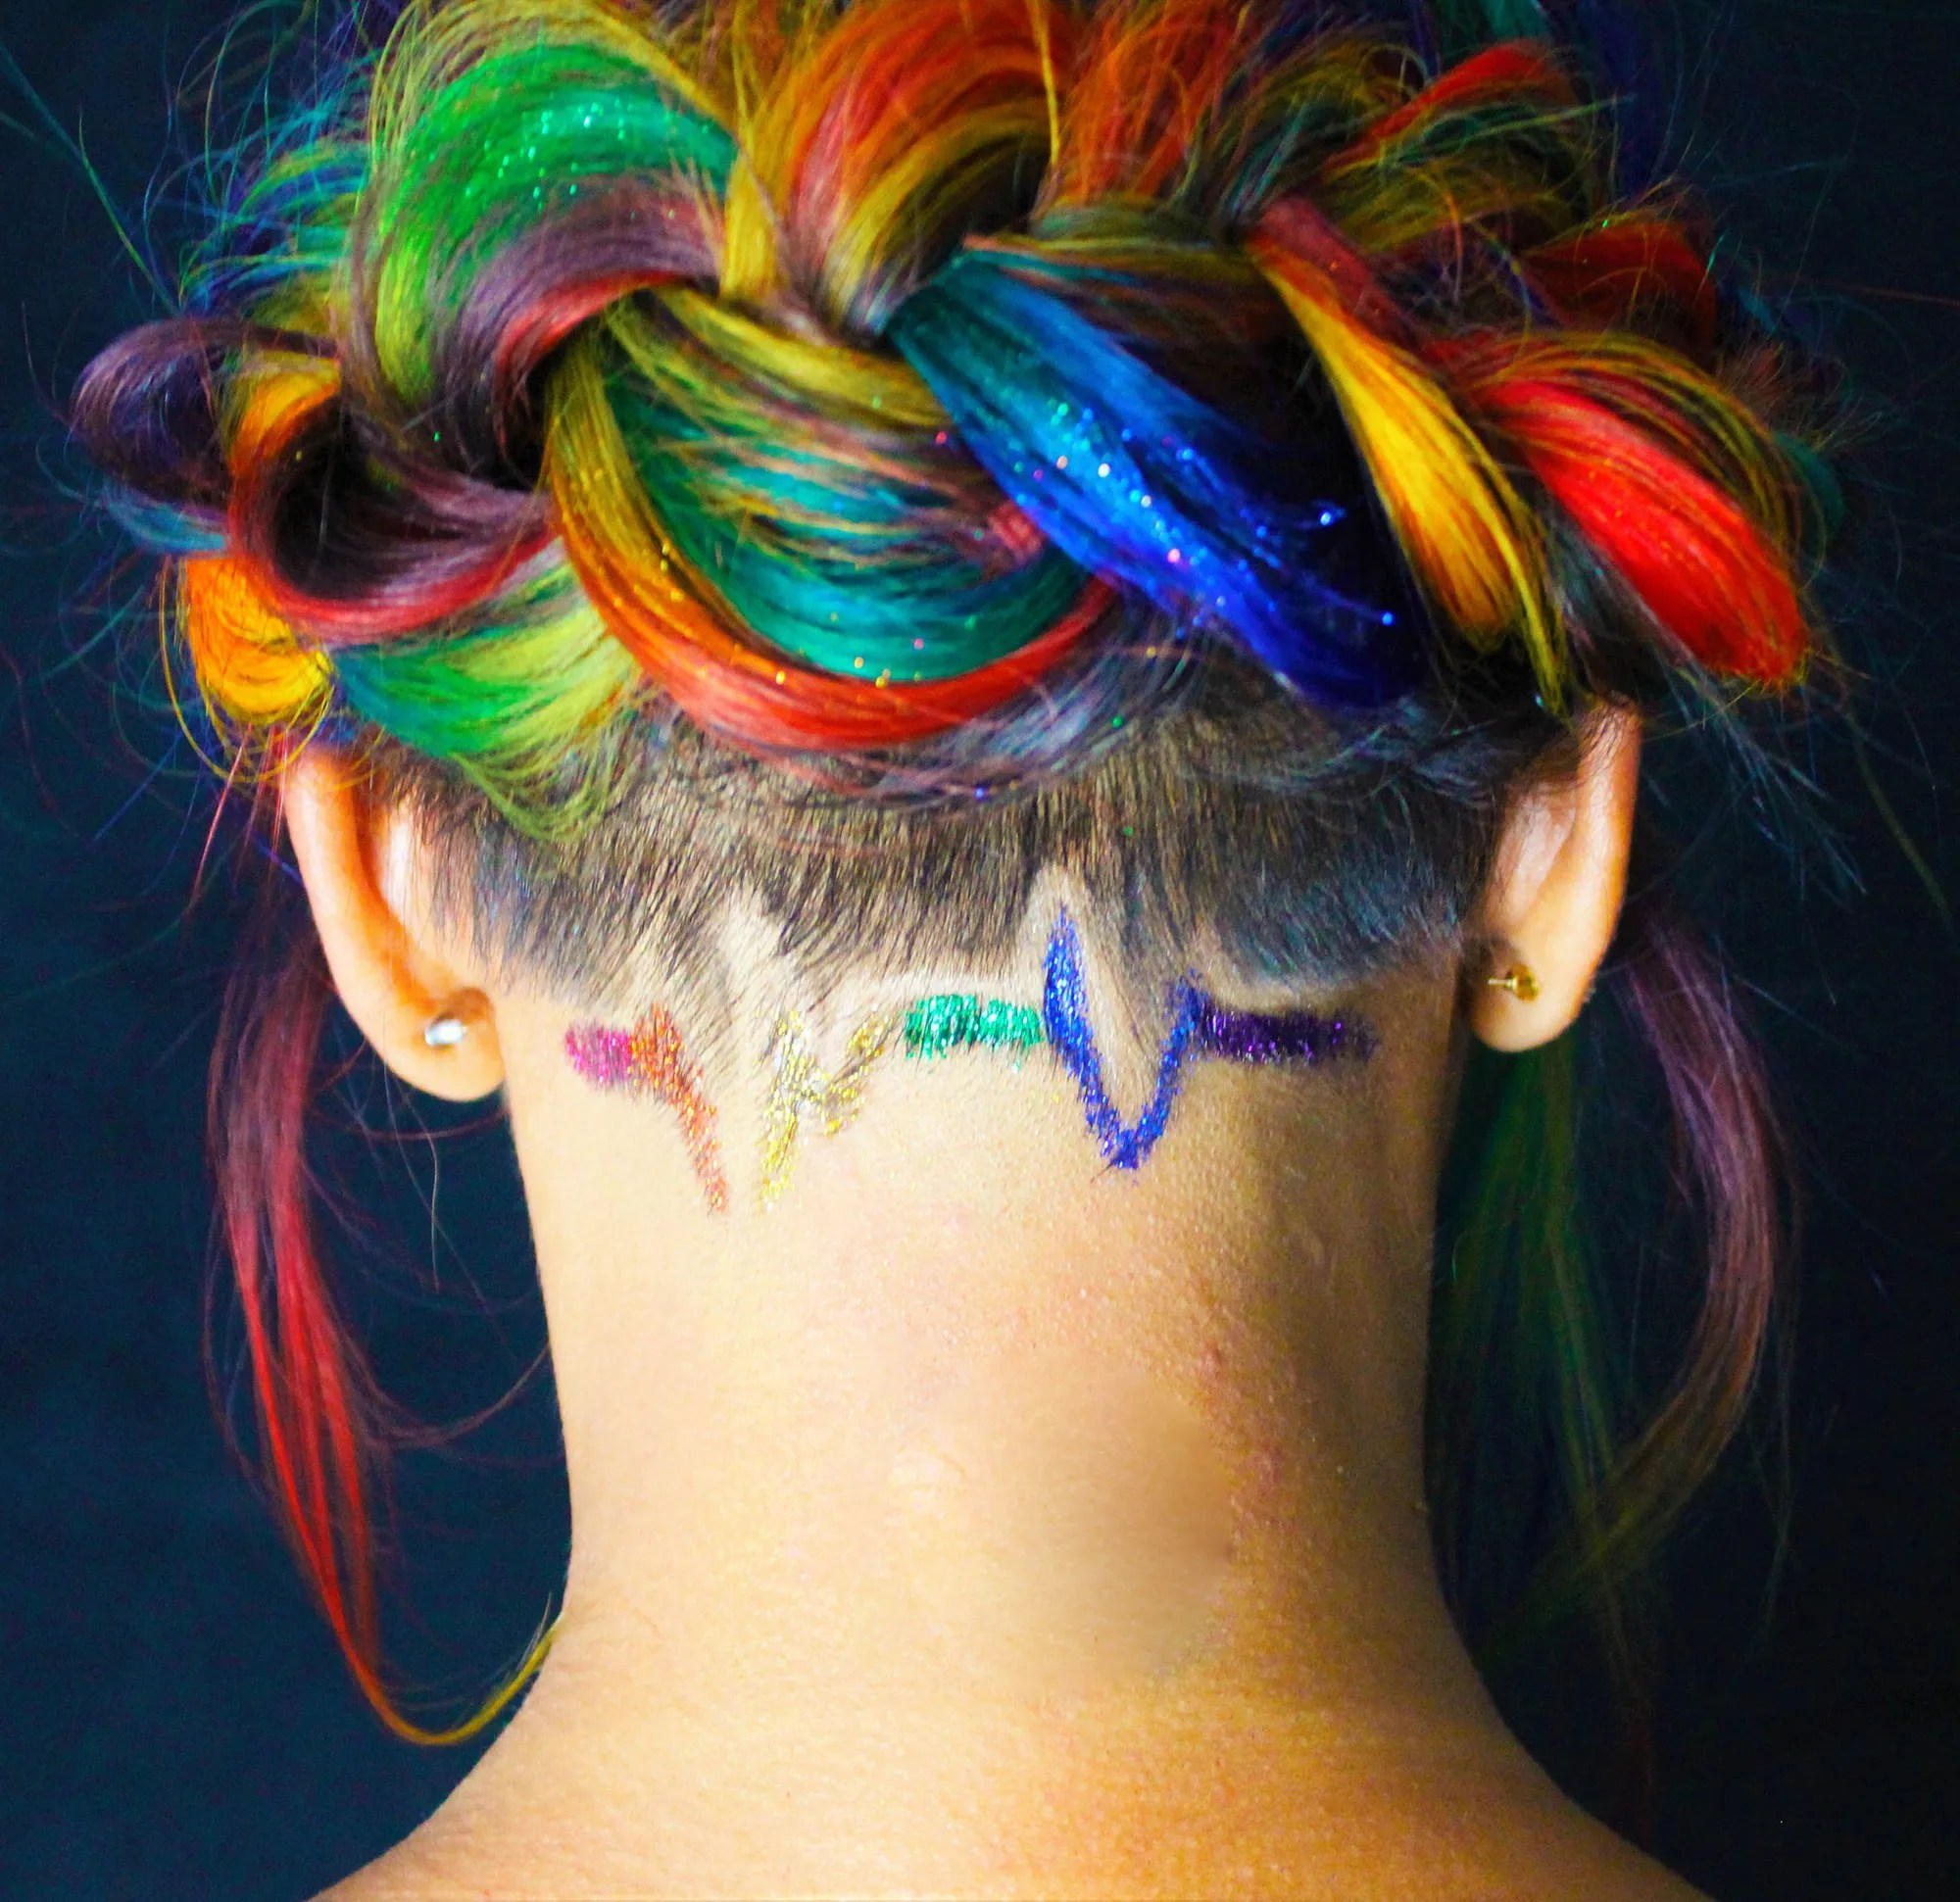 Coloured Hair Roots The Meaning Behind This Rainbow Hair Will Bring Tears To